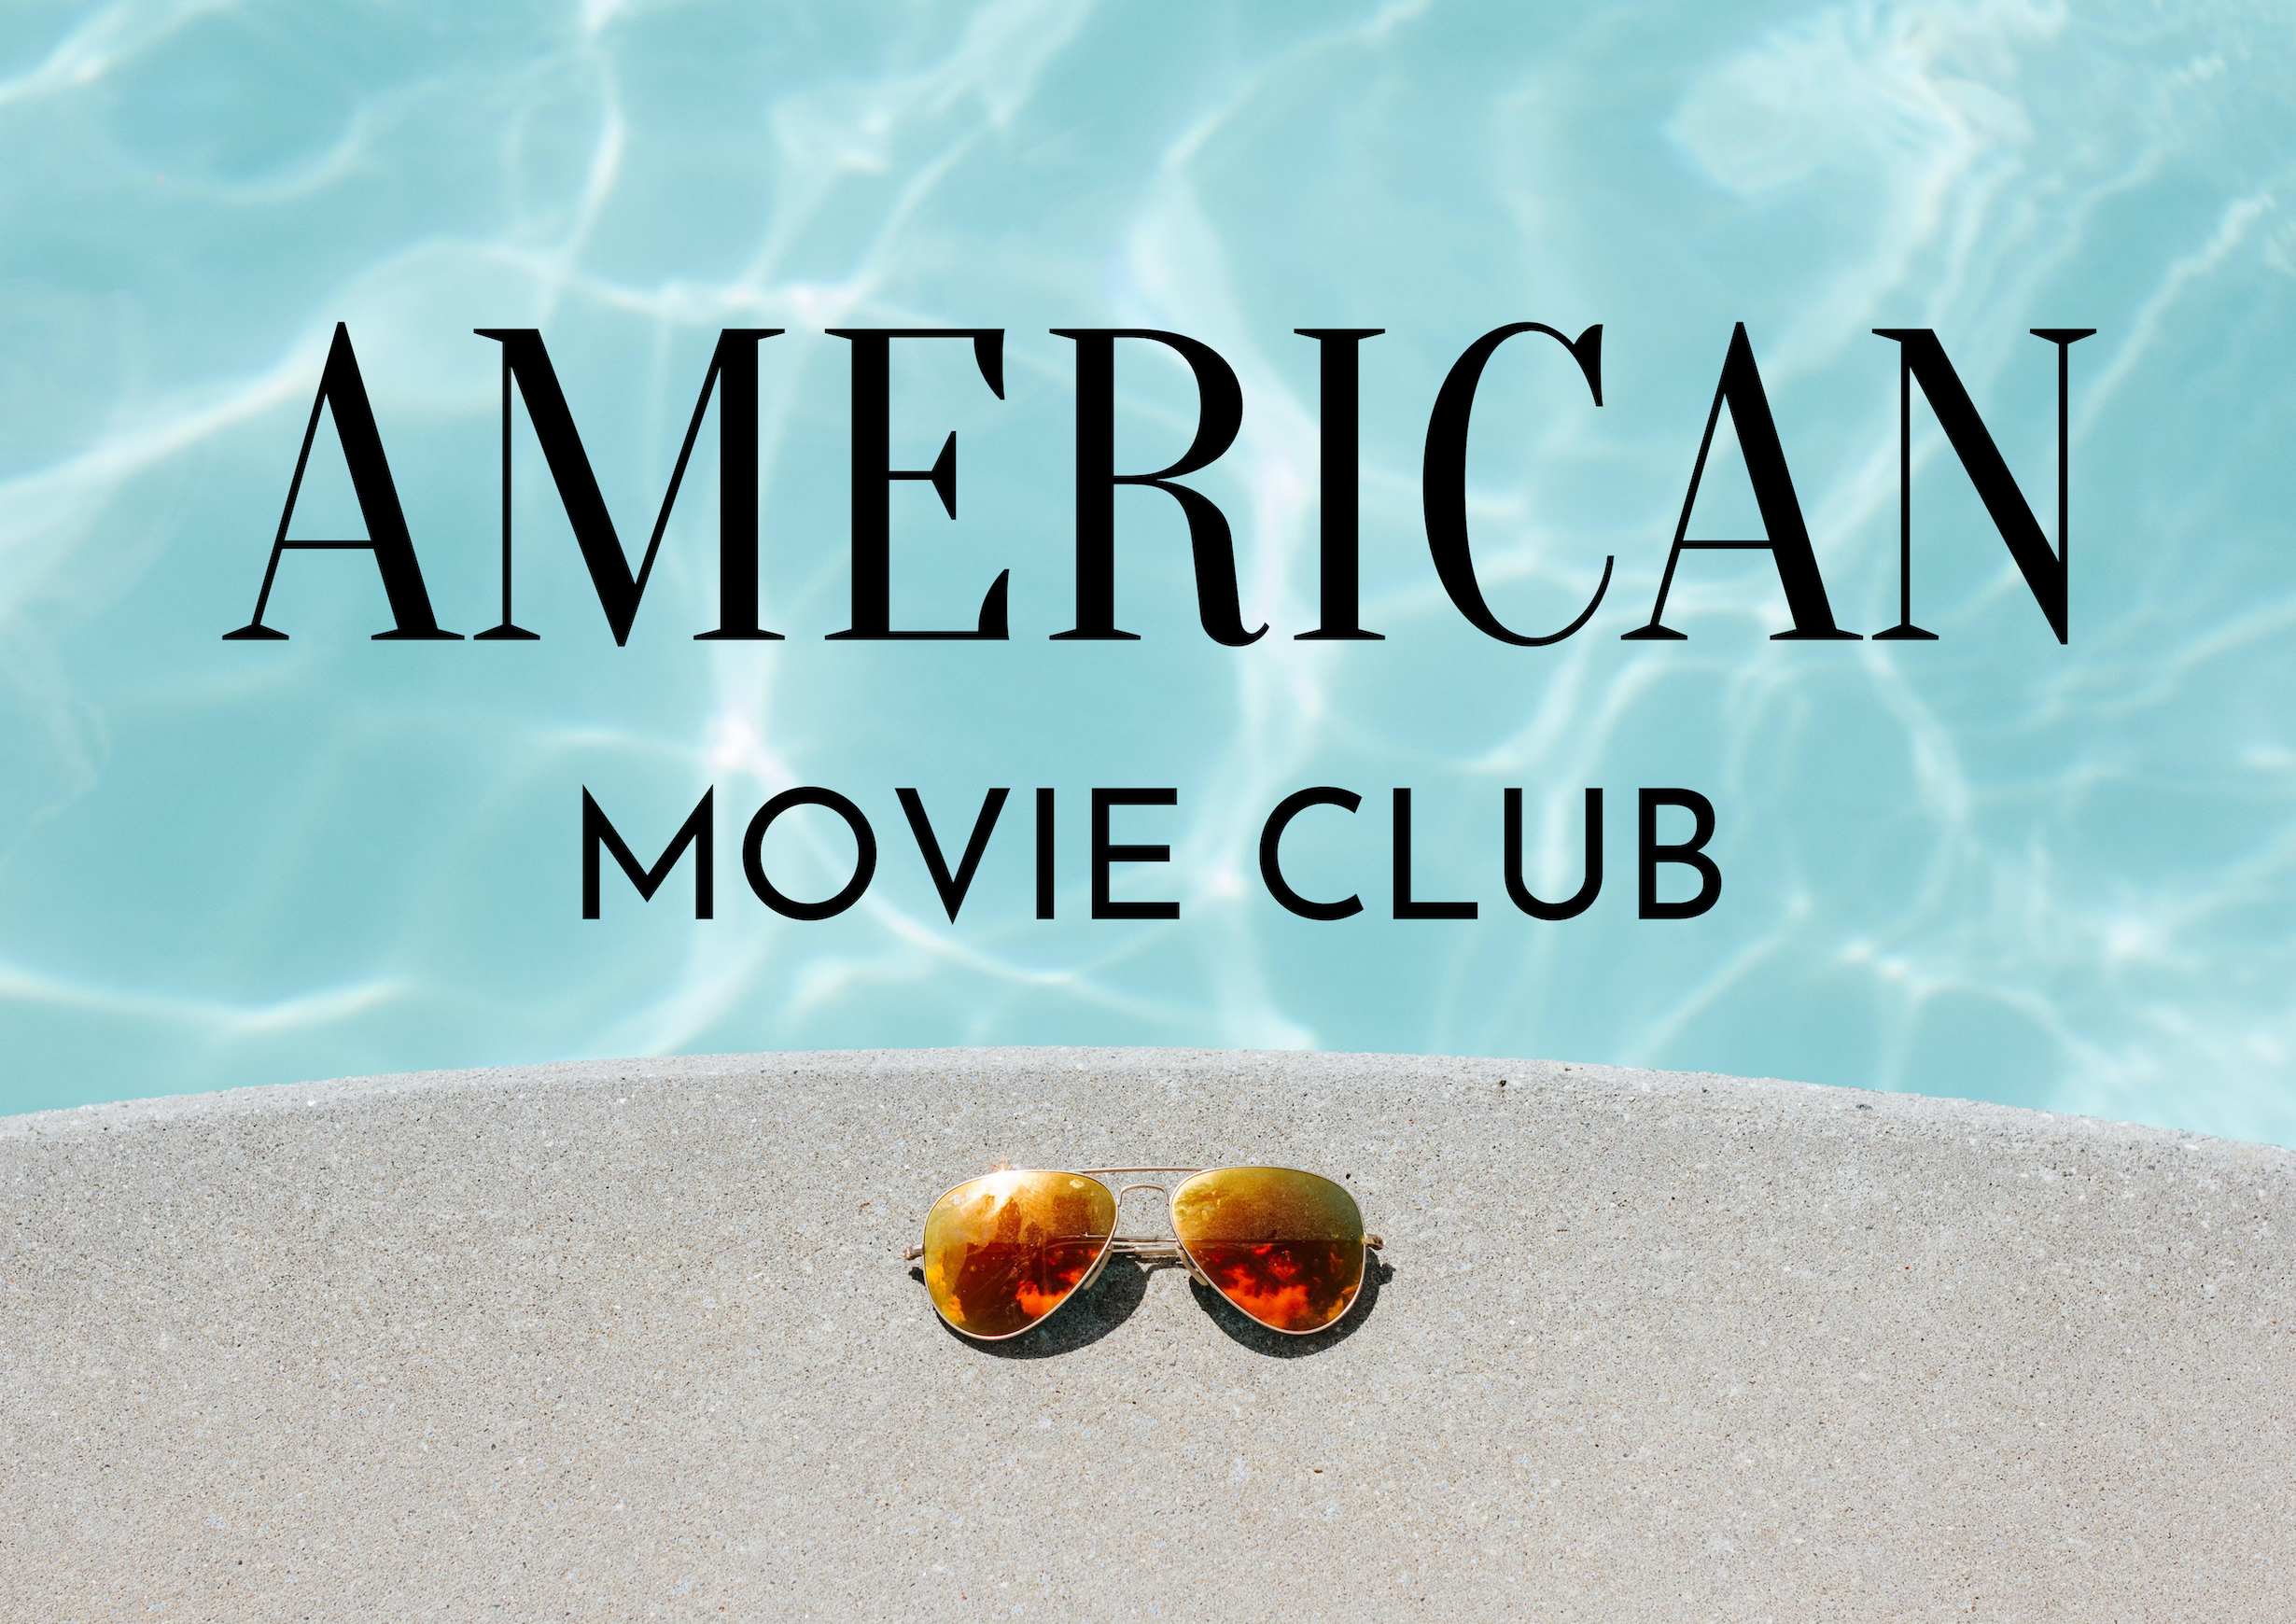 Ameican Movie Club